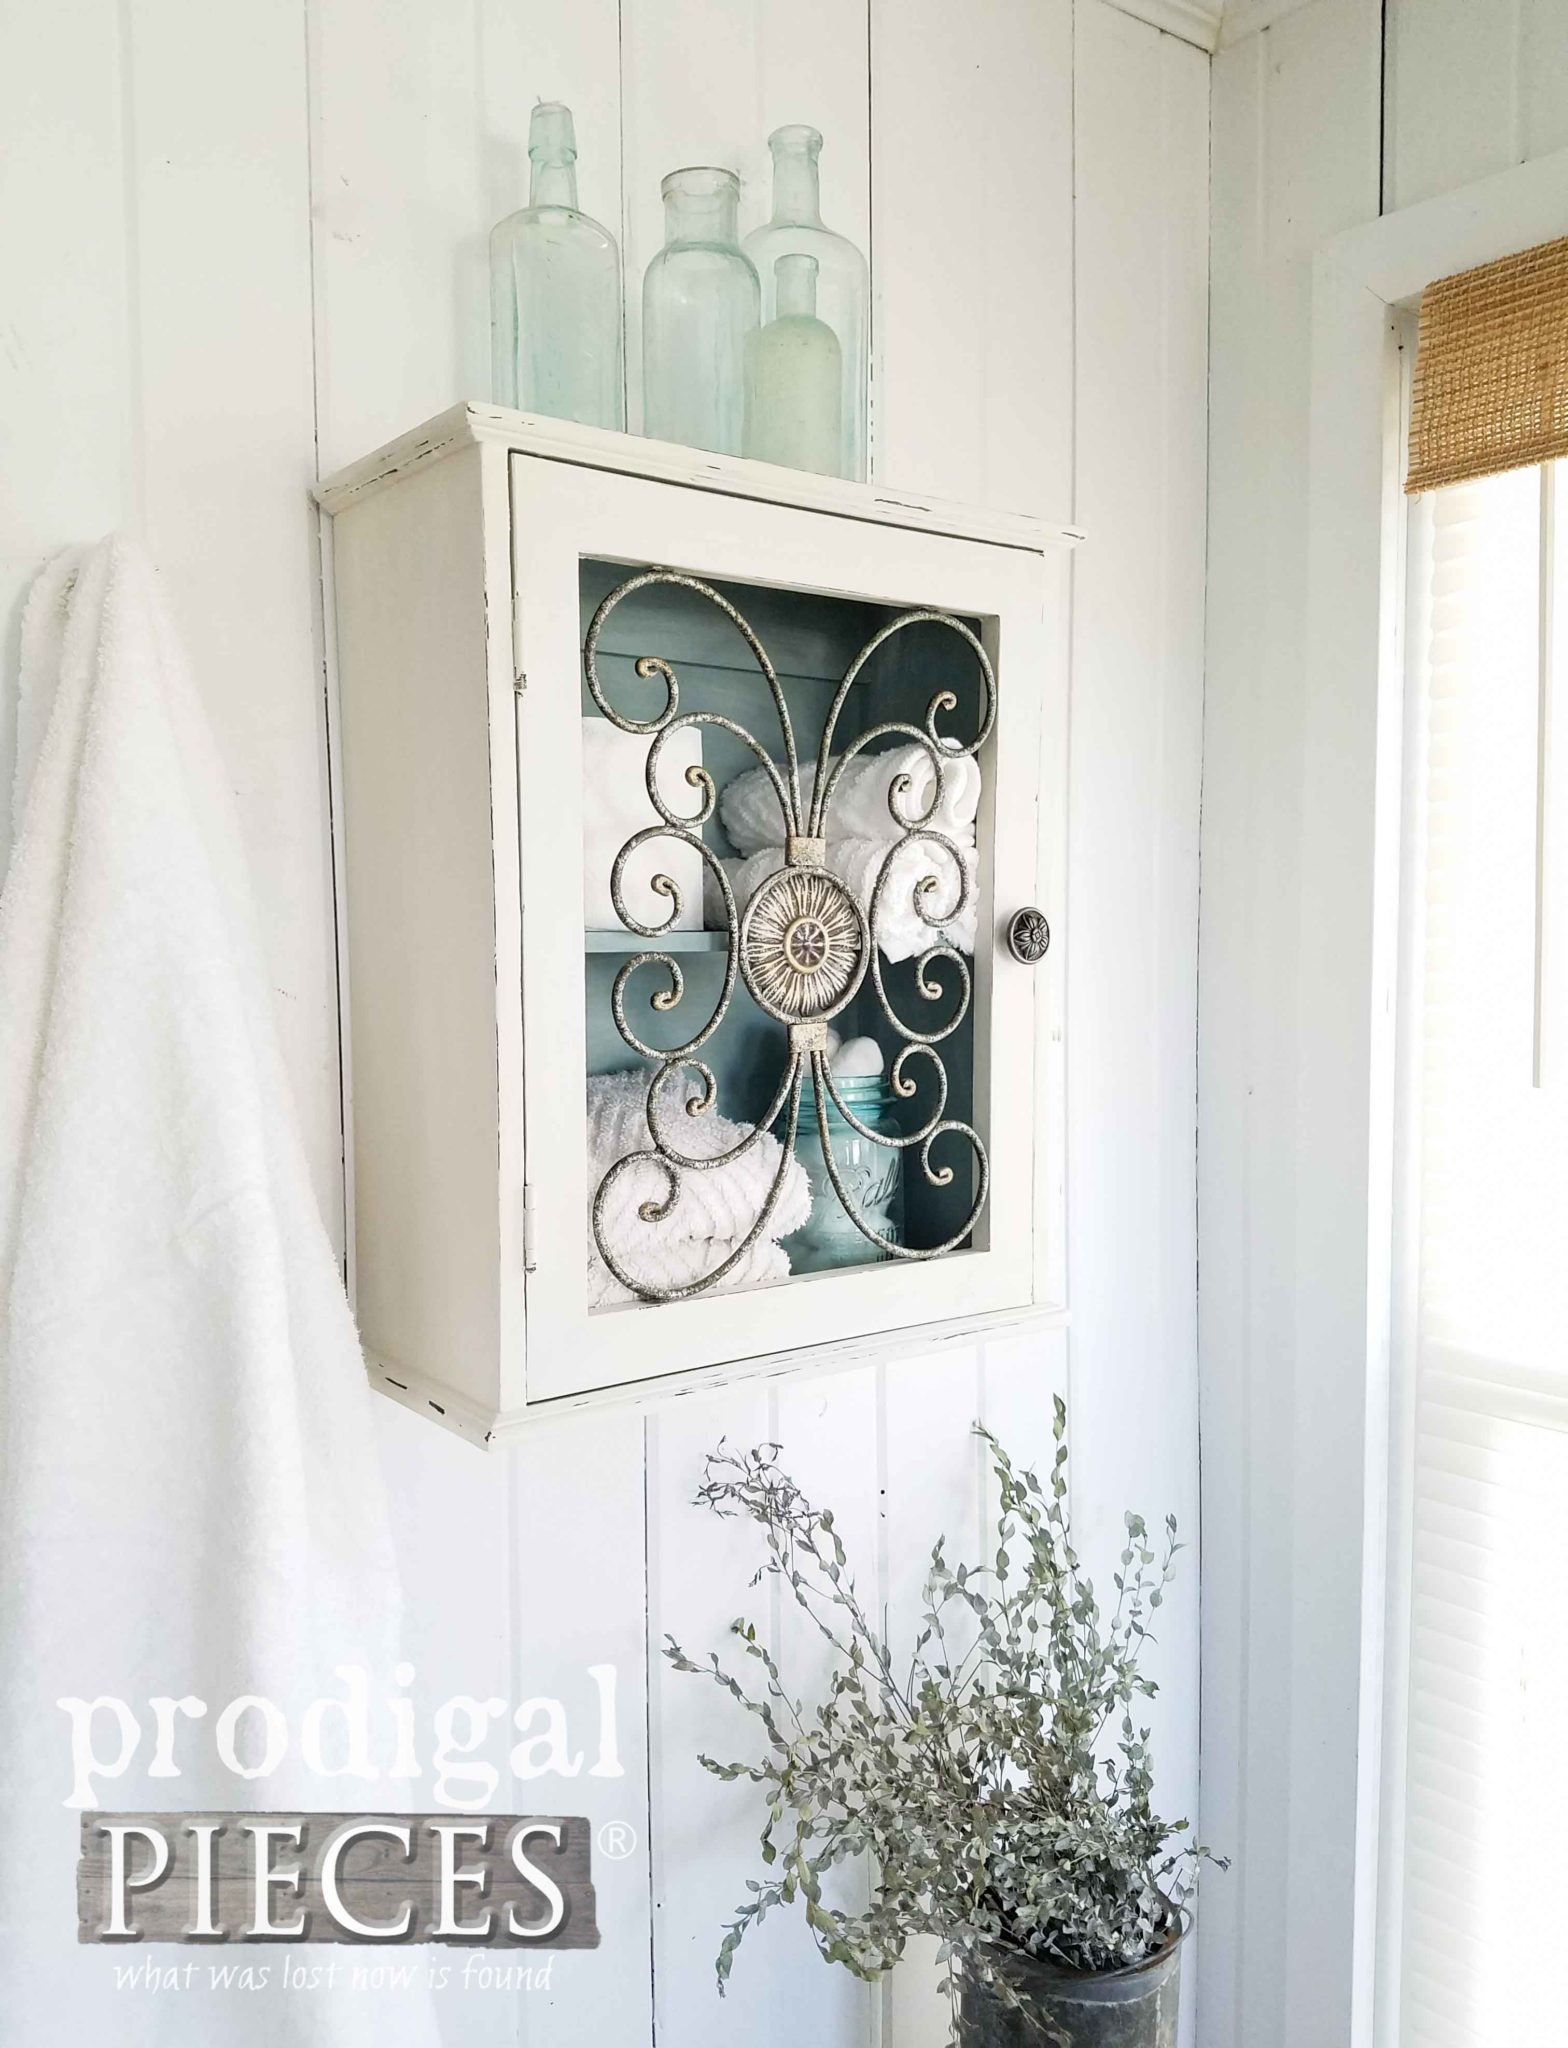 Modern Farmhouse Cottage Style Home Decor Storage for you home. Get the DIY at Prodigal Pieces | prodigalpieces.com